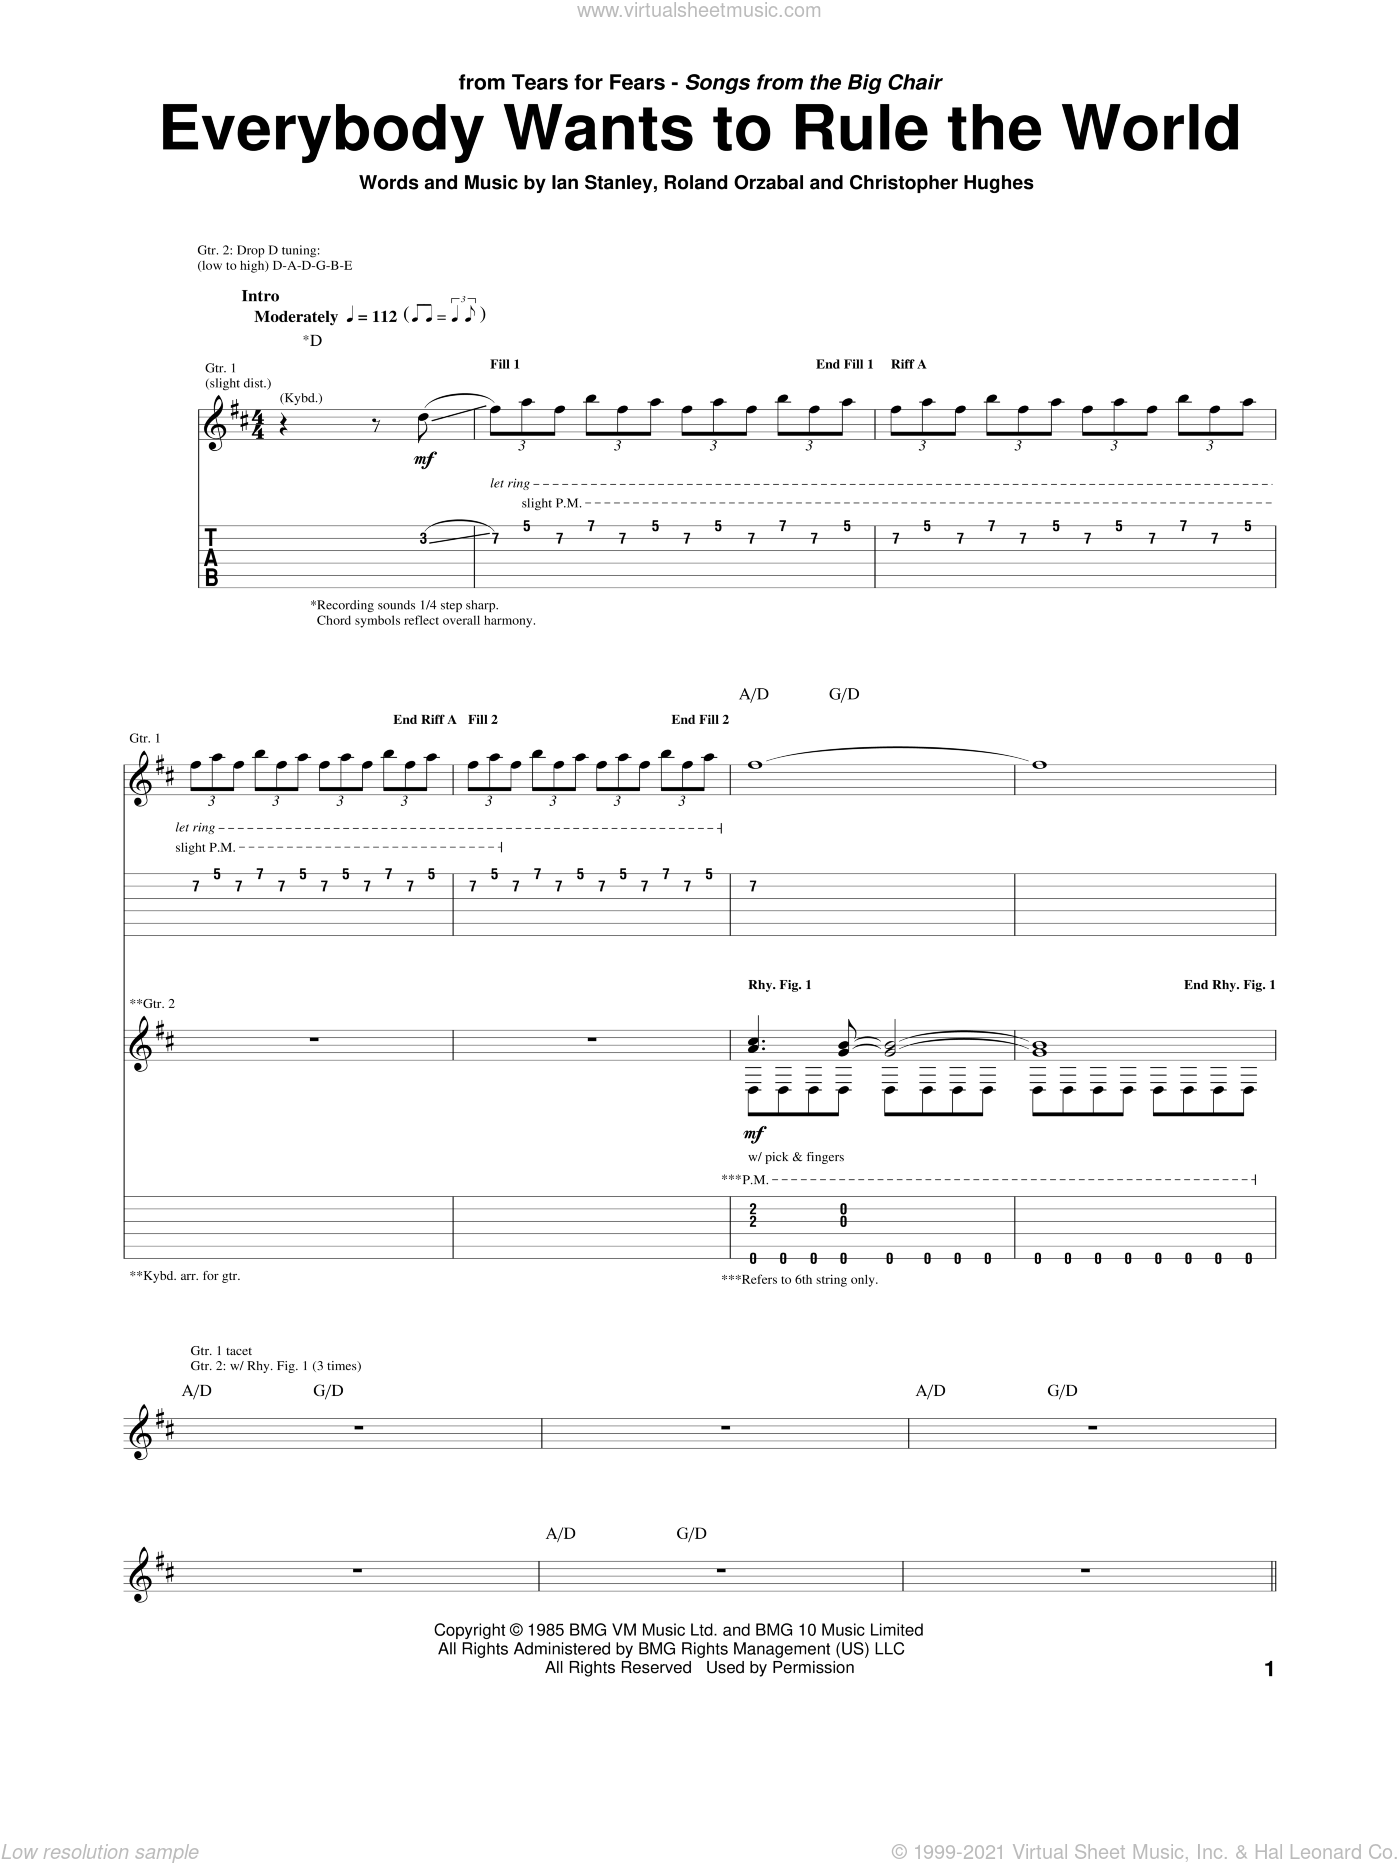 Everybody Wants To Rule The World sheet music for guitar (tablature) by Tears For Fears, Christopher Hughes, Ian Stanley and Roland Orzabal, intermediate